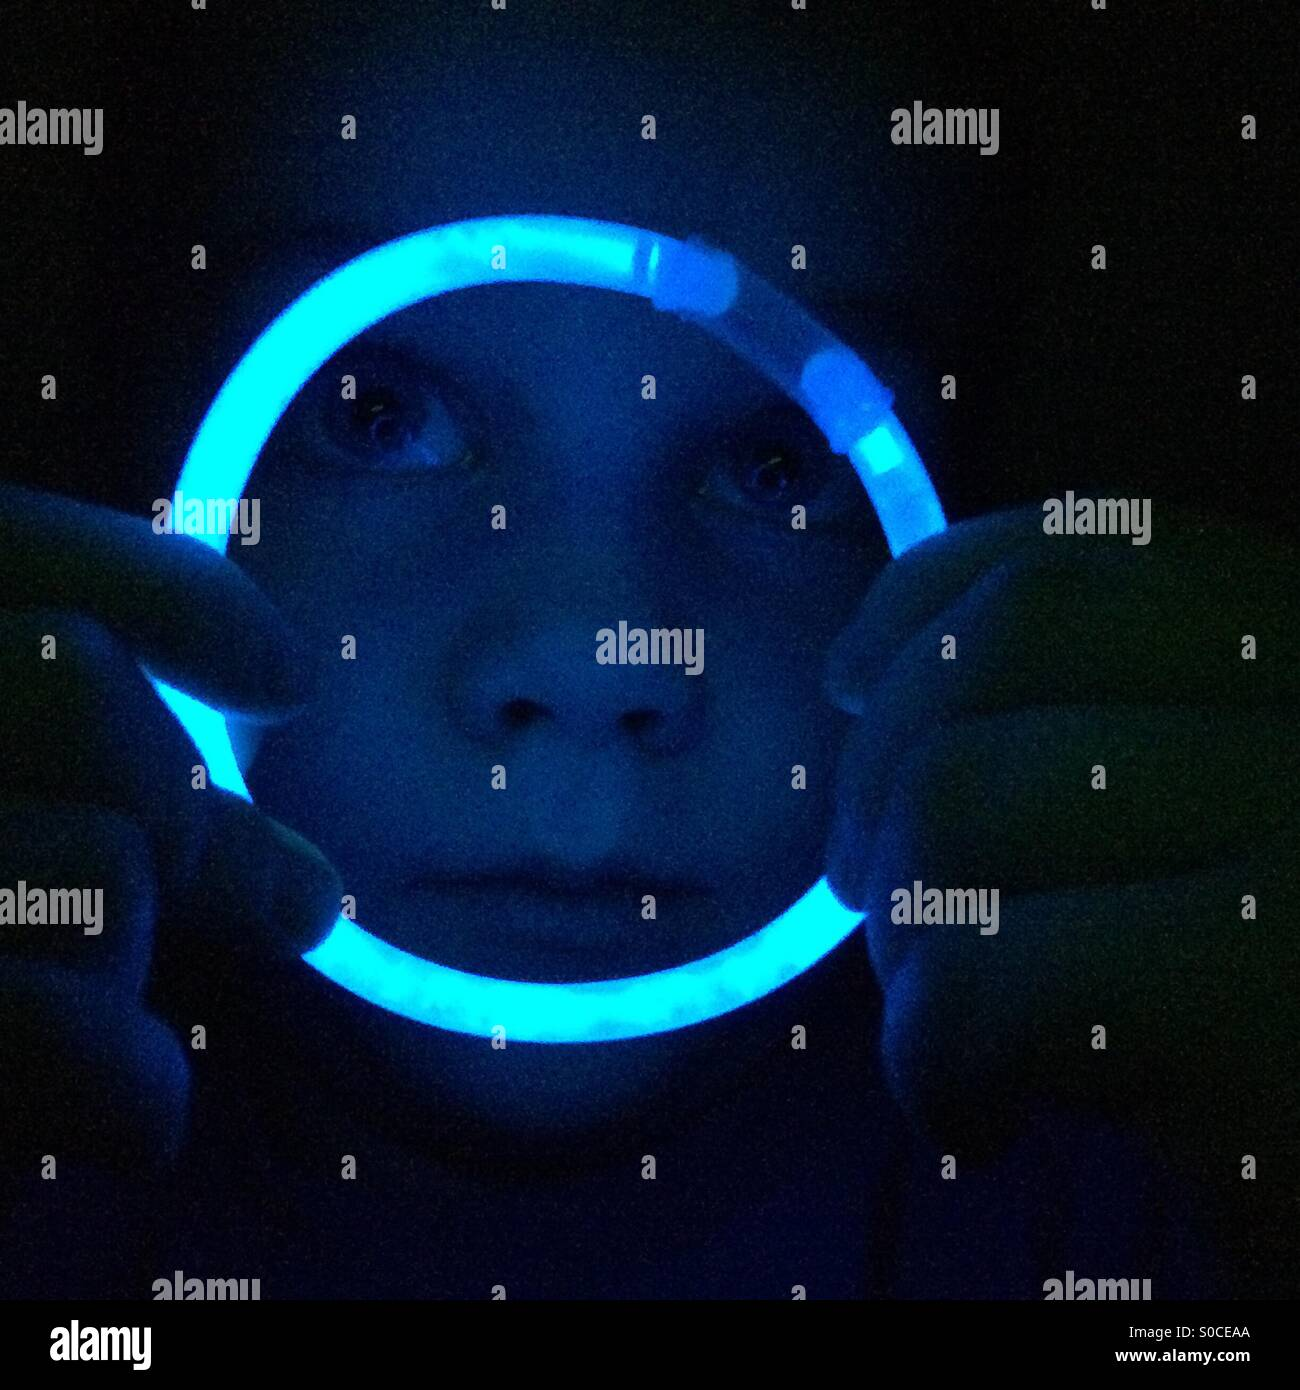 Boy looking through blue glow stick hoop Photo Stock